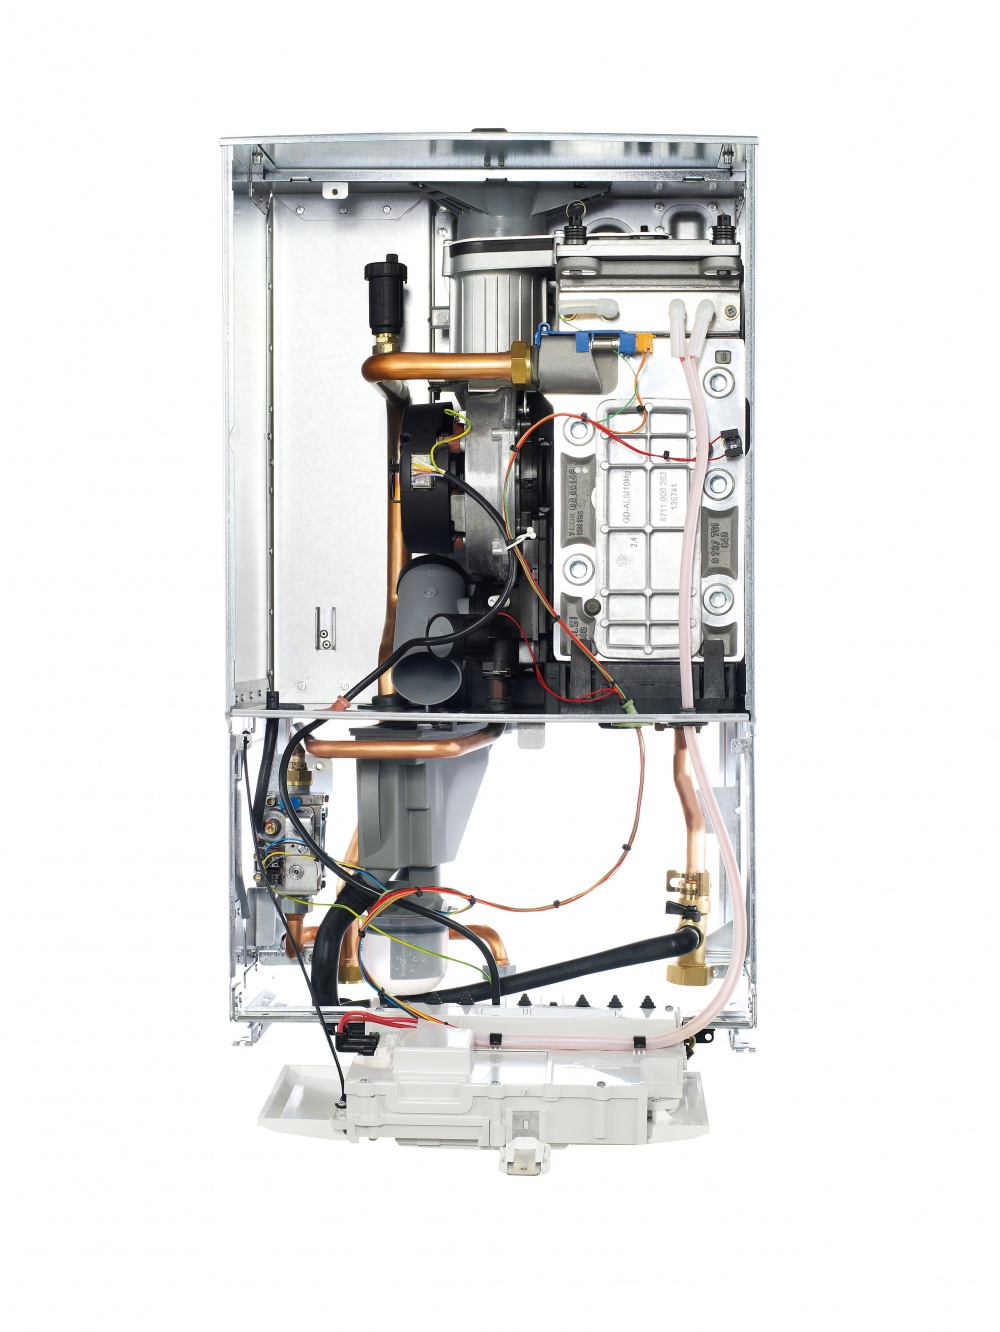 Wiring Diagrams Worcester Bosch Group Typical Boiler Diagram Internal View